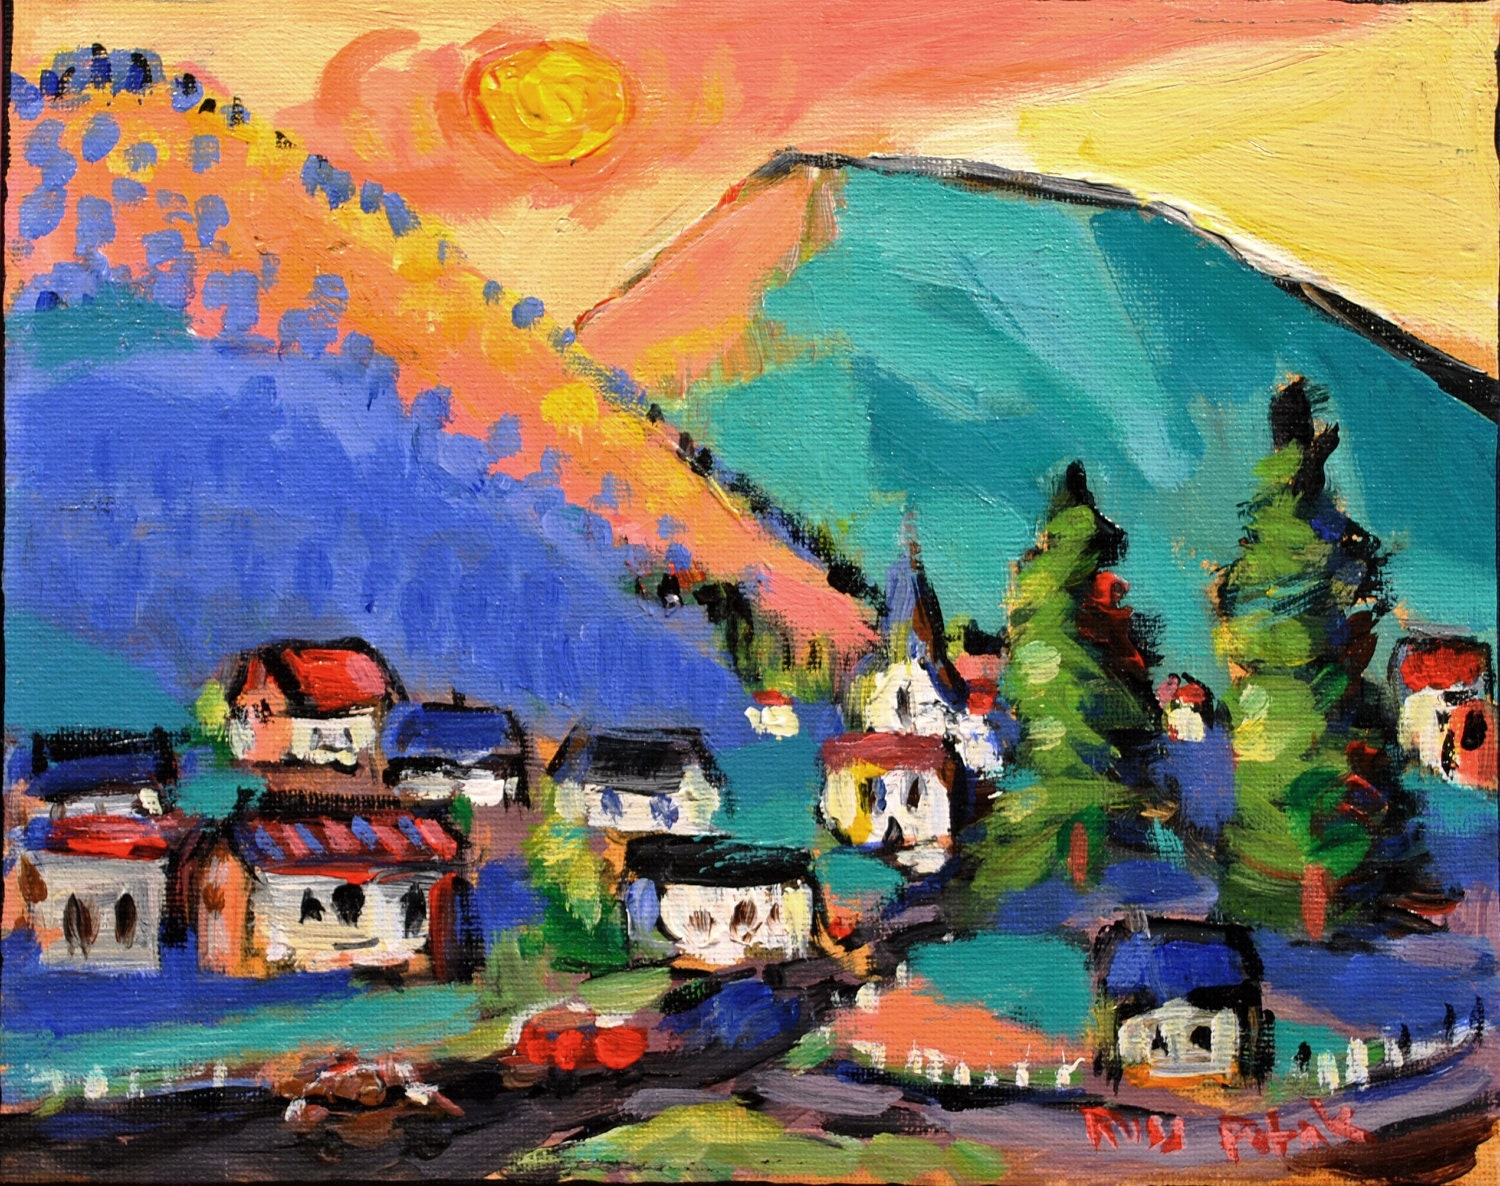 Canvas Santa Fe >> Abstract Landscape Expressionist Painting Village Town